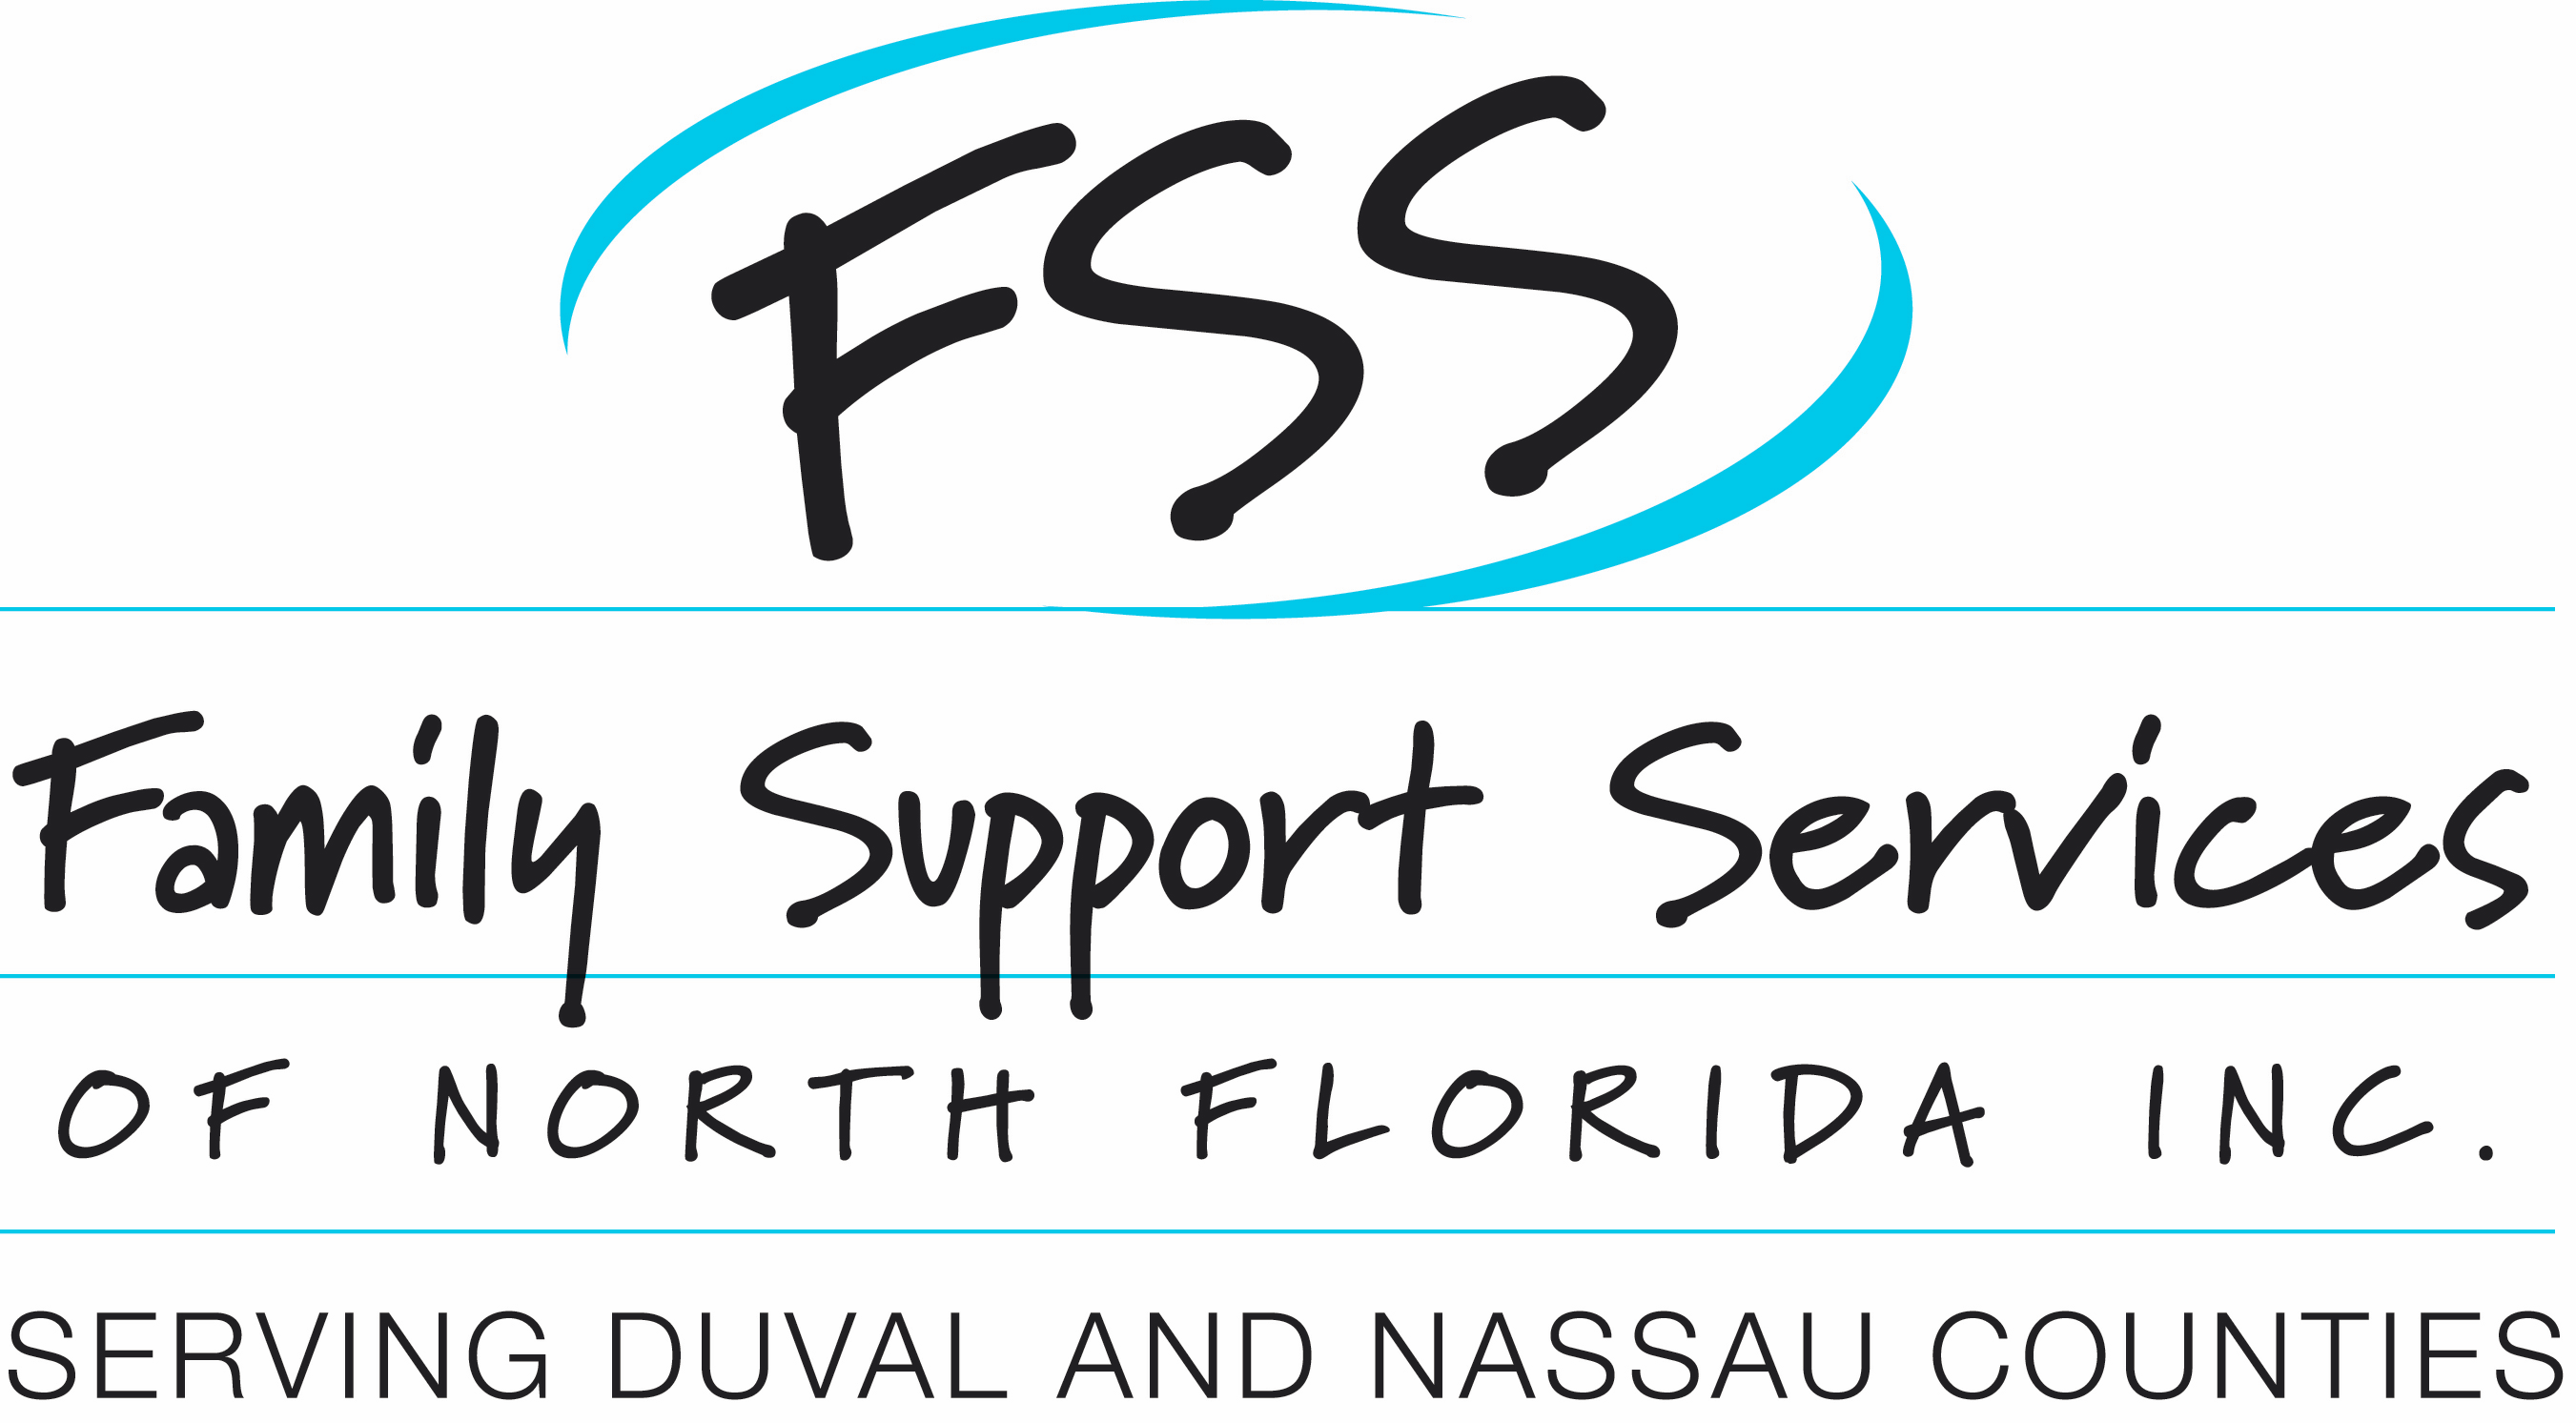 Family Support Services of North Florida, Inc.